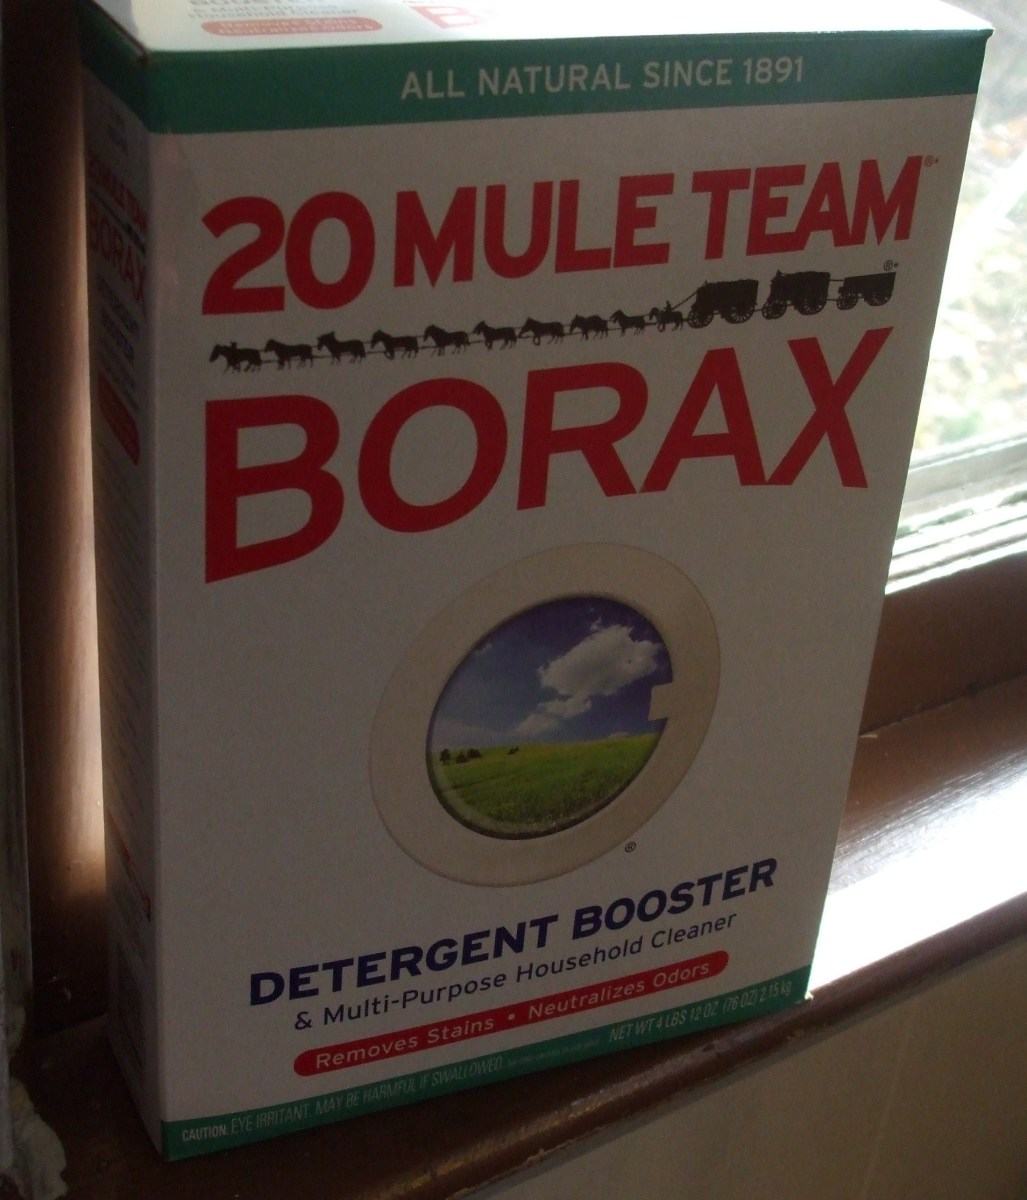 Good 'ole 20 Mule Team Borax is full of mold-killing lime borate good stuff!